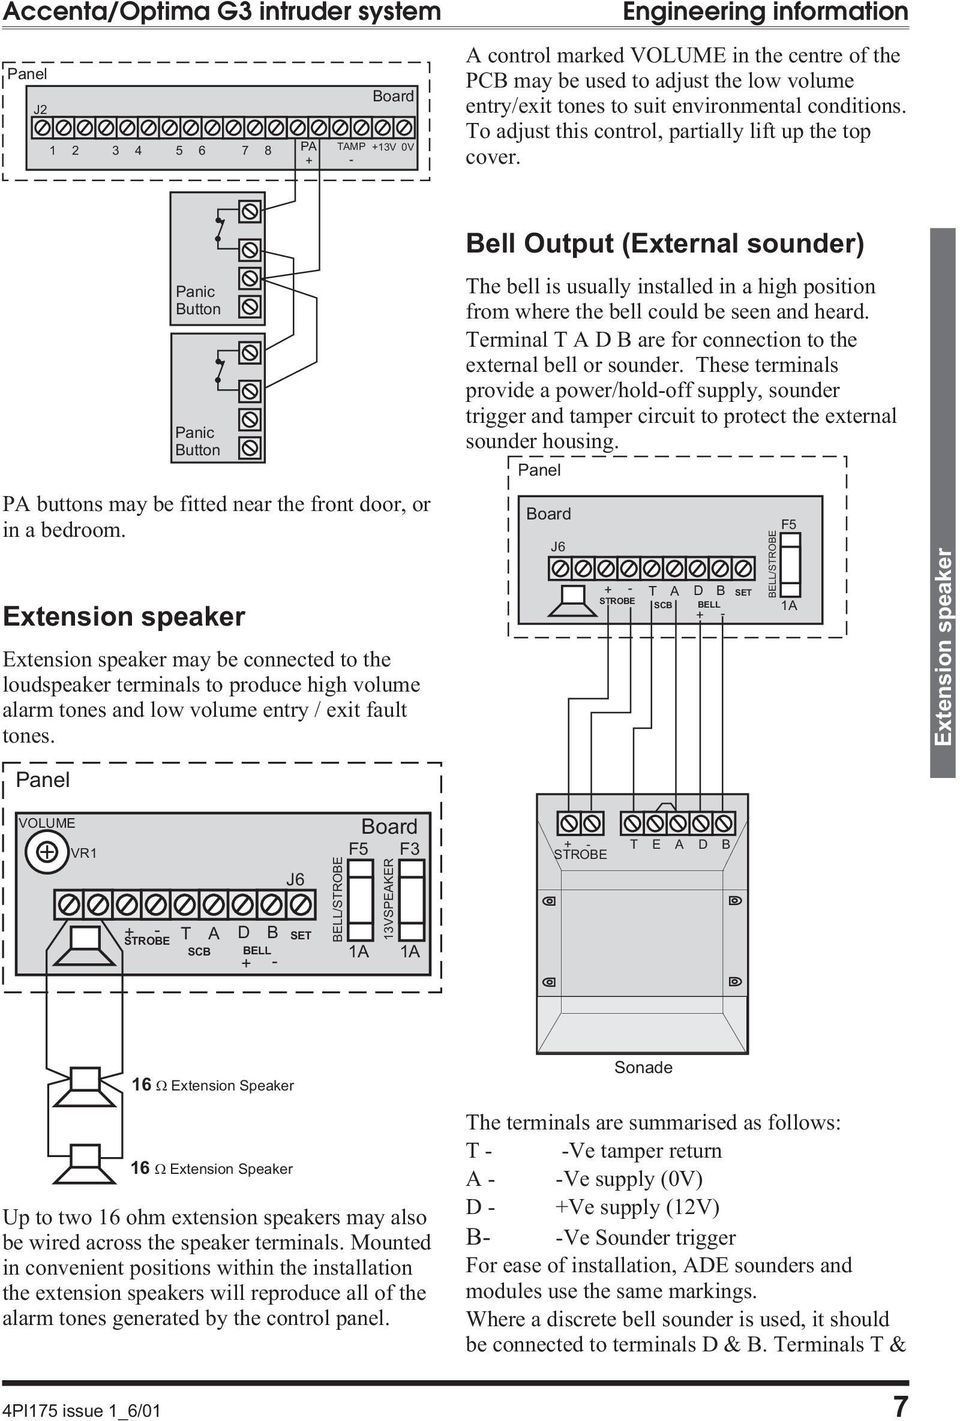 Extension speaker Extension speaker may be connected to the loudspeaker terminals to produce high volume alarm tones and low volume entry / exit fault tones.